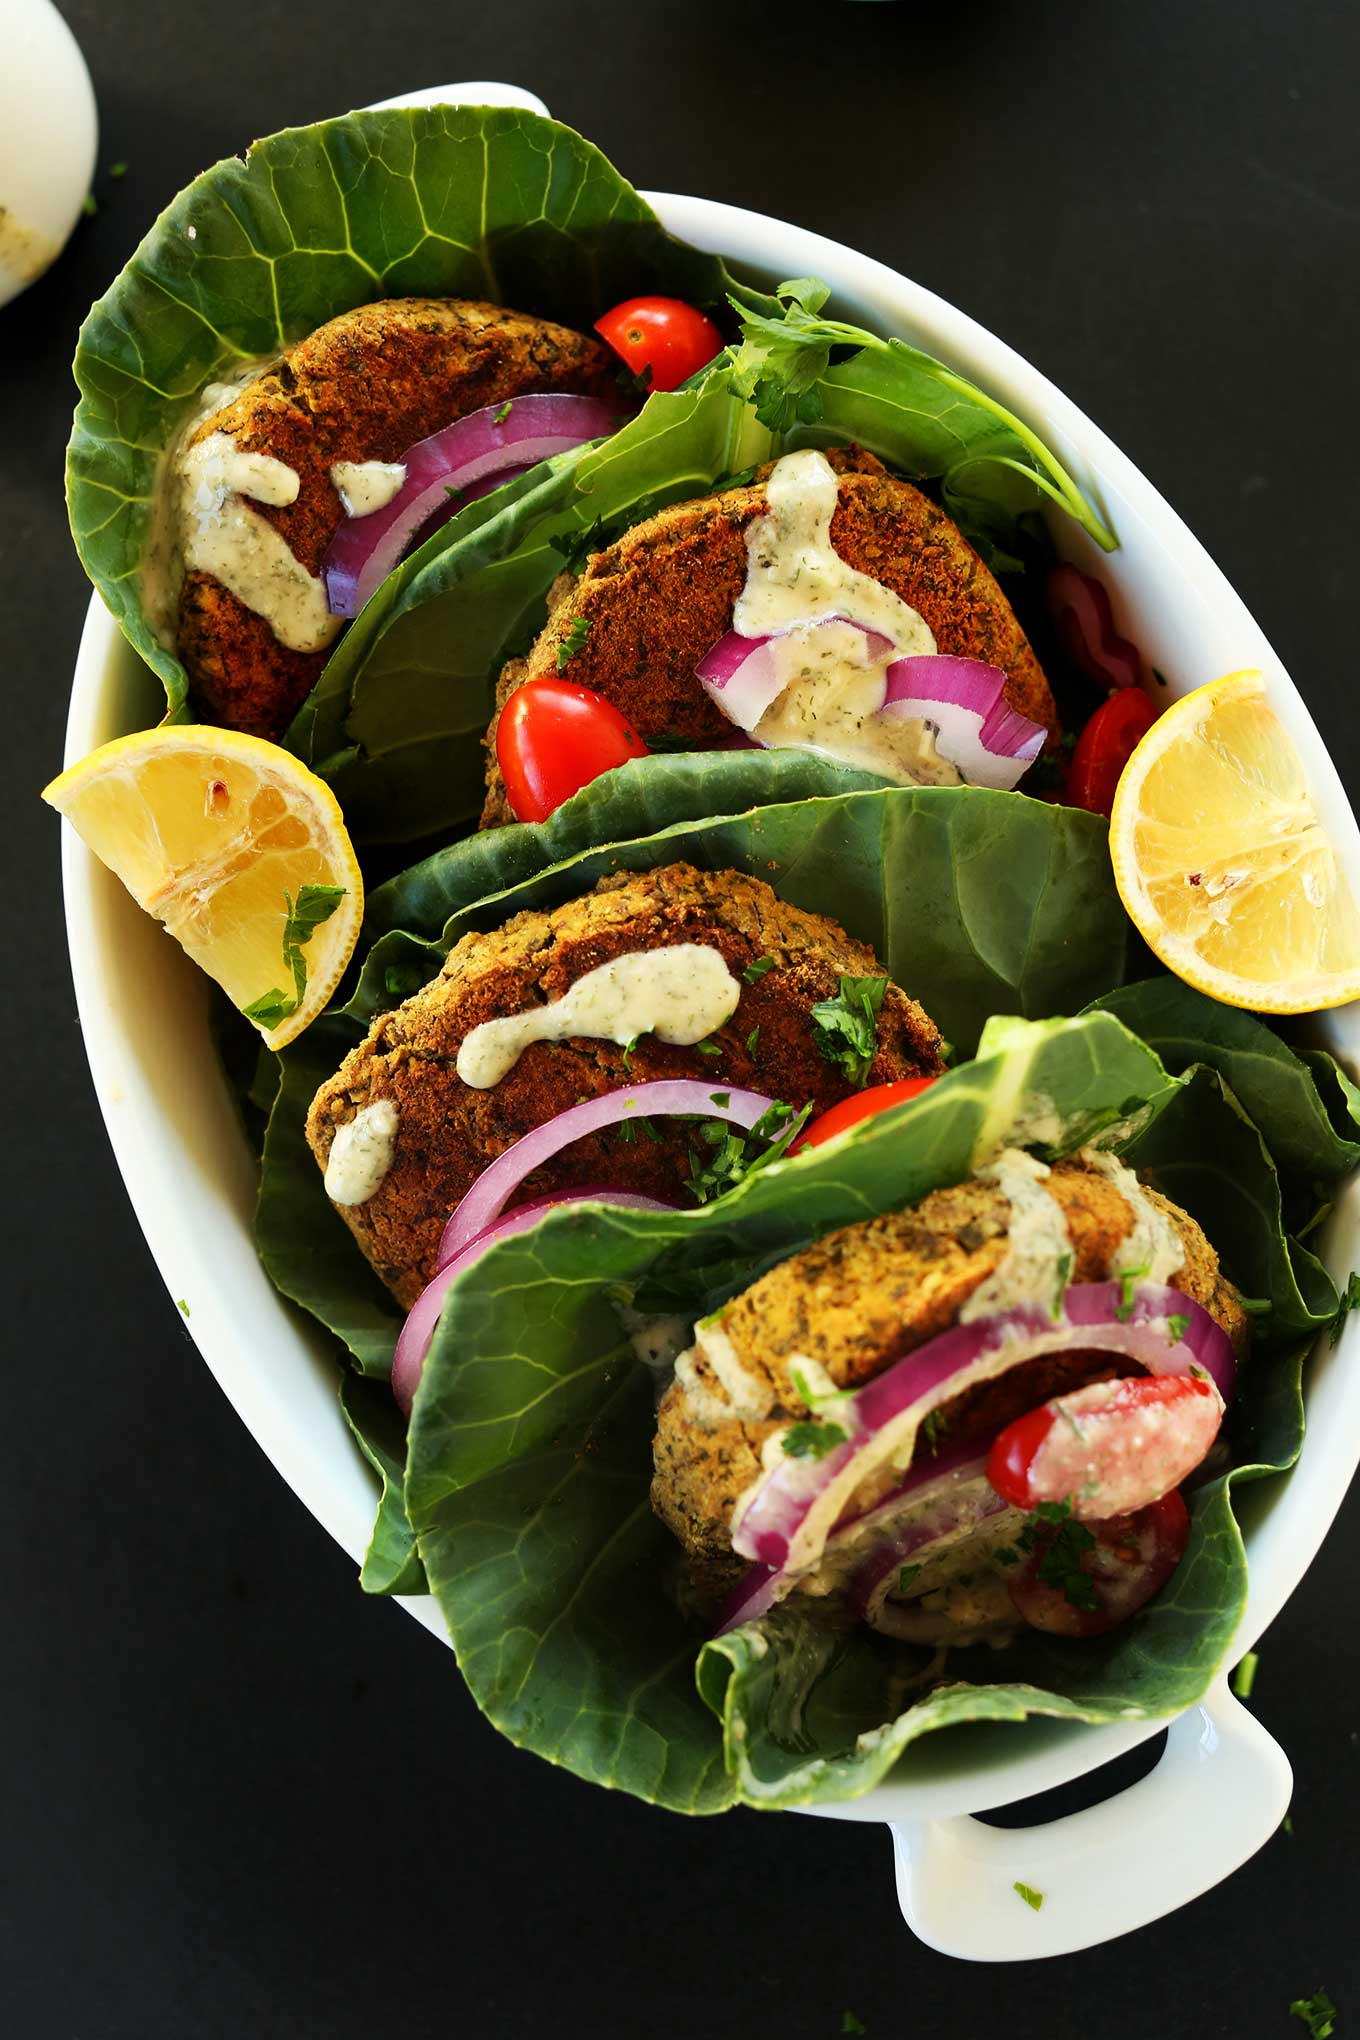 Large dish of falafel burgers wrapped in collard greens with onions, sauce, and other toppings